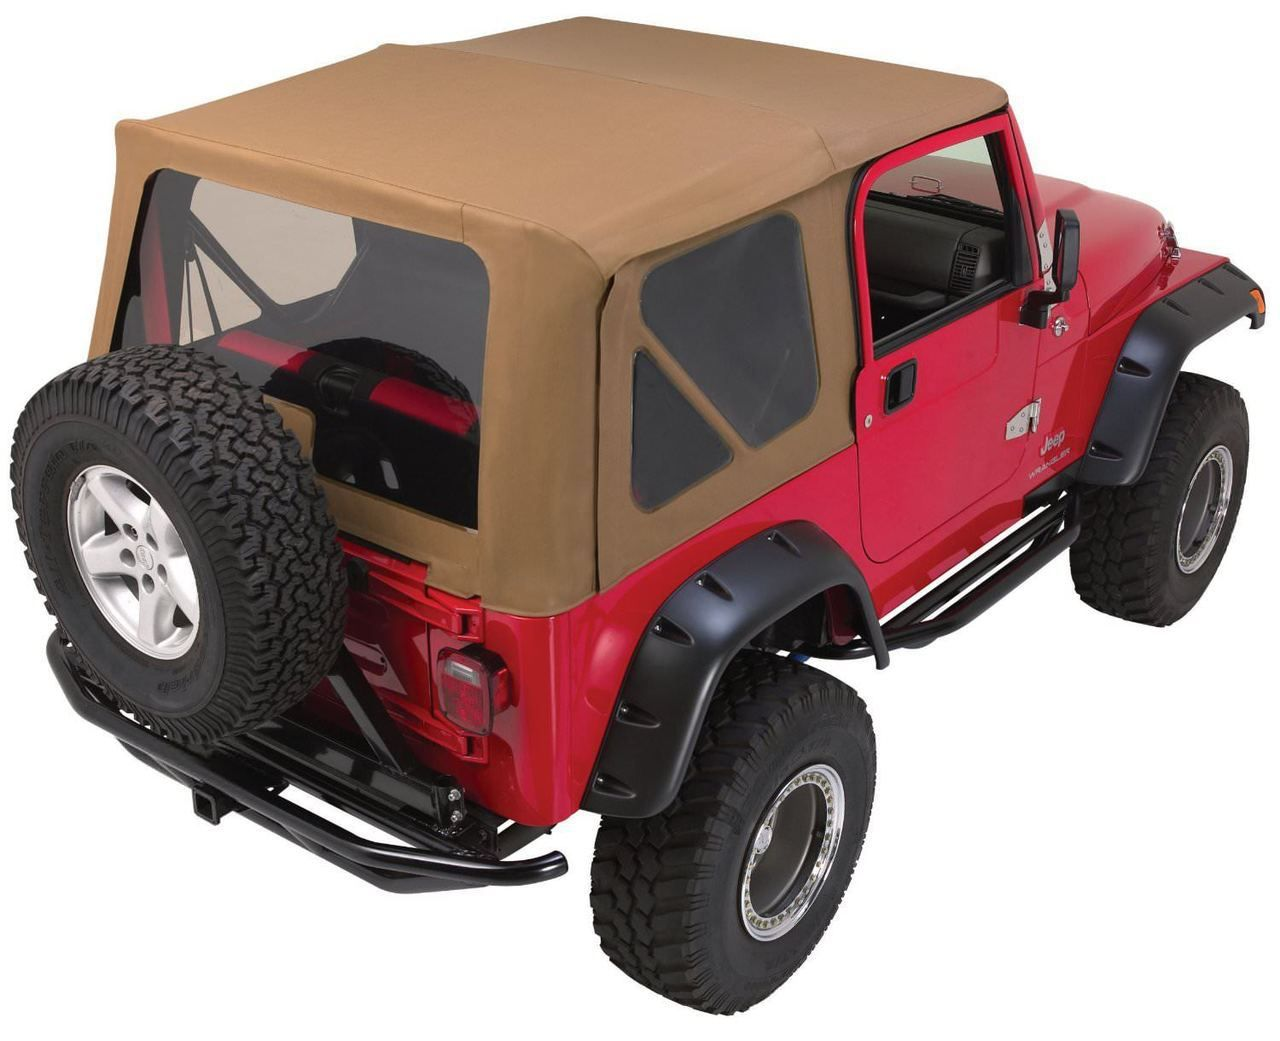 Rampage Rp68335 Complete Top Frame Hardware 97 06 Jeep Wrangler With Soft Upper Doors Diamond Black Jeep Wrangler Tj Wrangler Tj Soft Tops